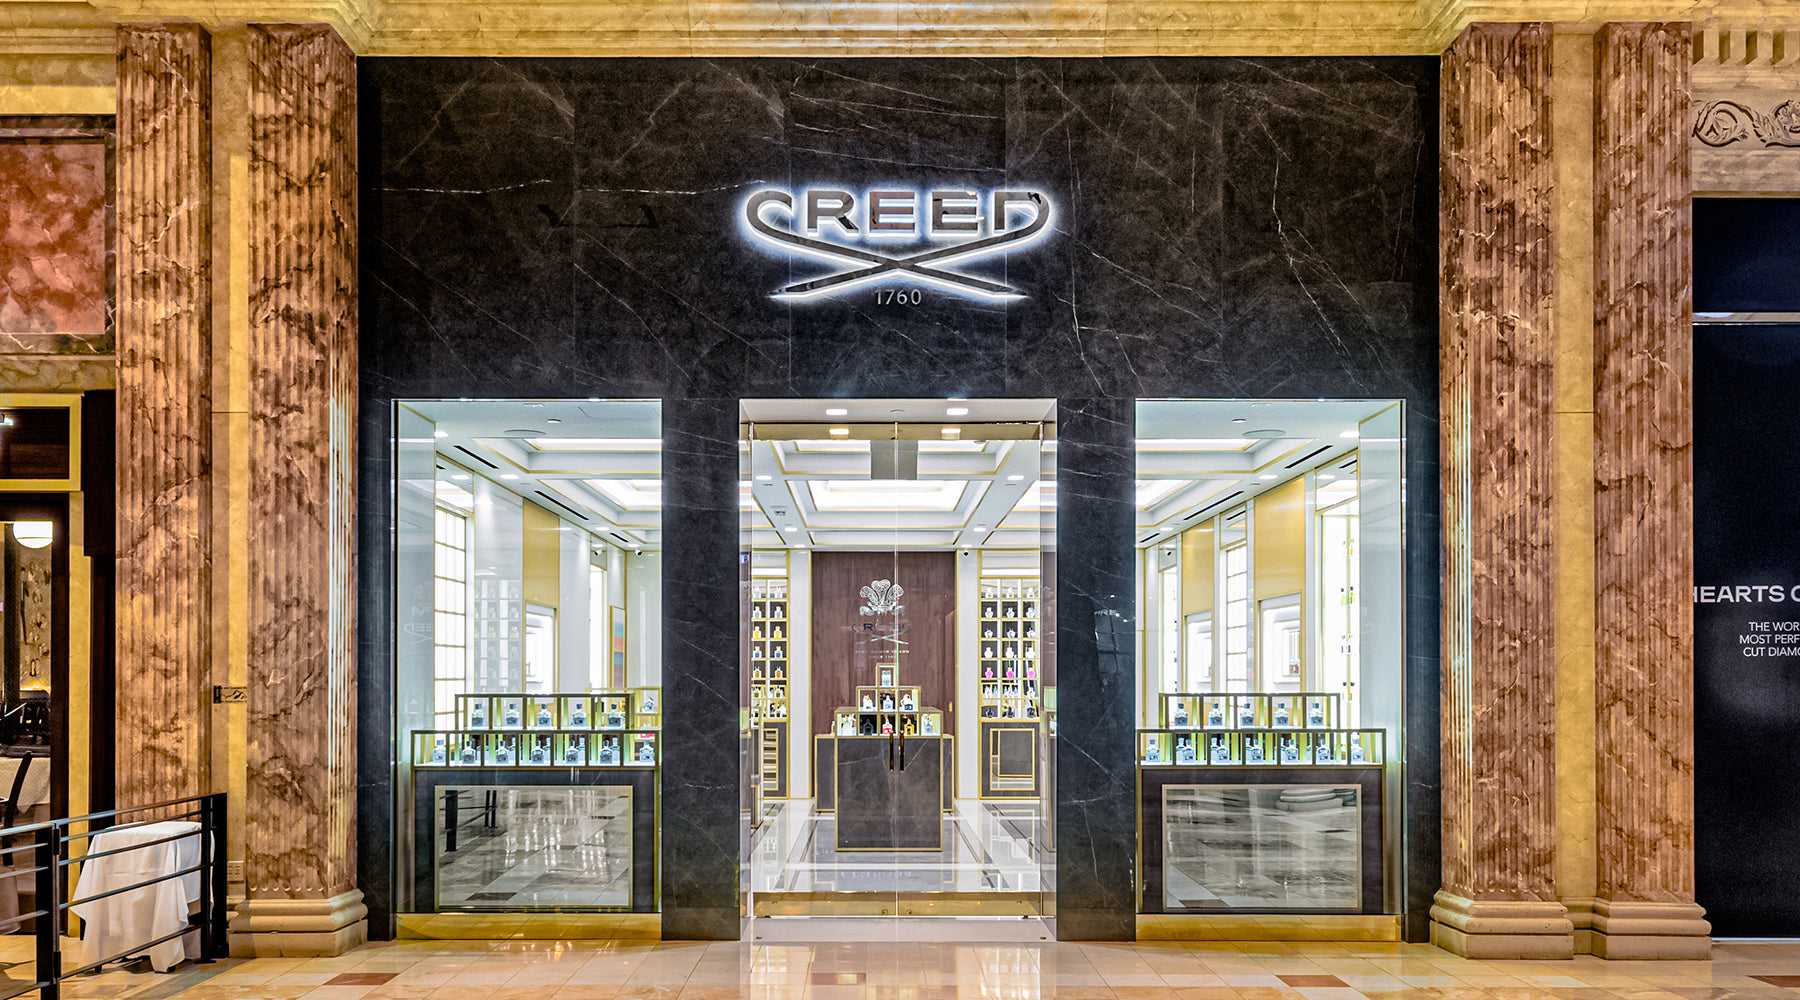 Creed Boutique Las Vegas Storefront